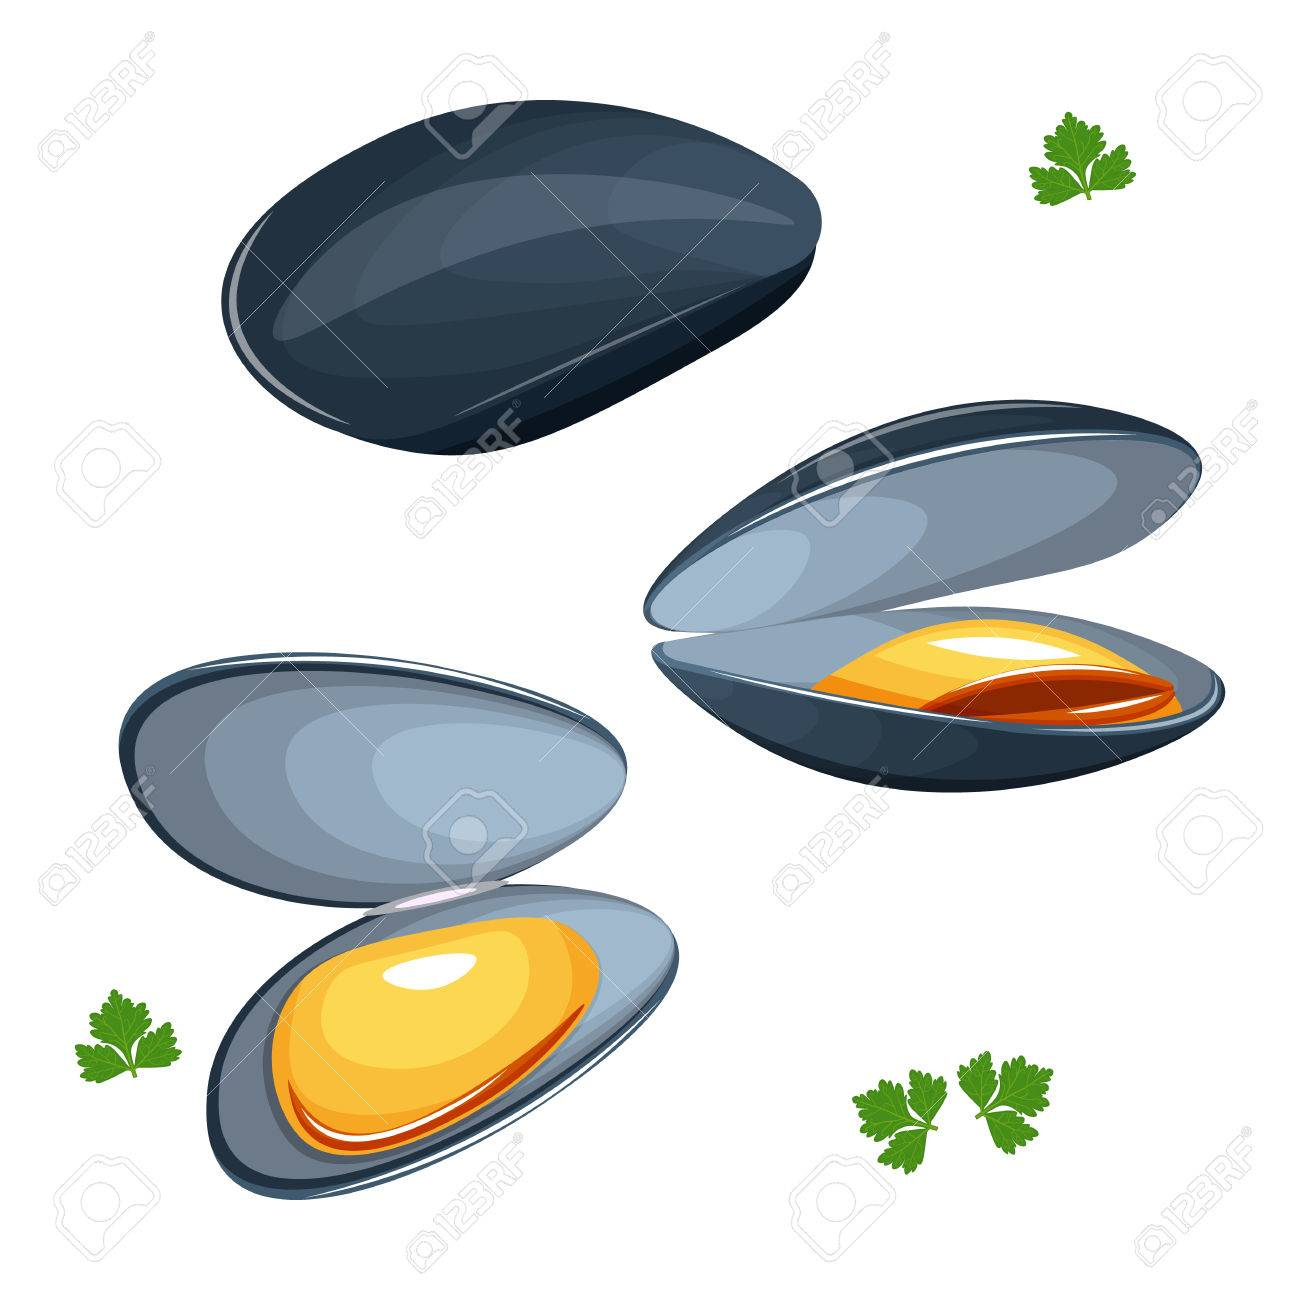 mussels vector illustration isolated on a white background royalty rh 123rf com Cartoon Ocean Clip Art Borders Free Free Nautical Clip Art